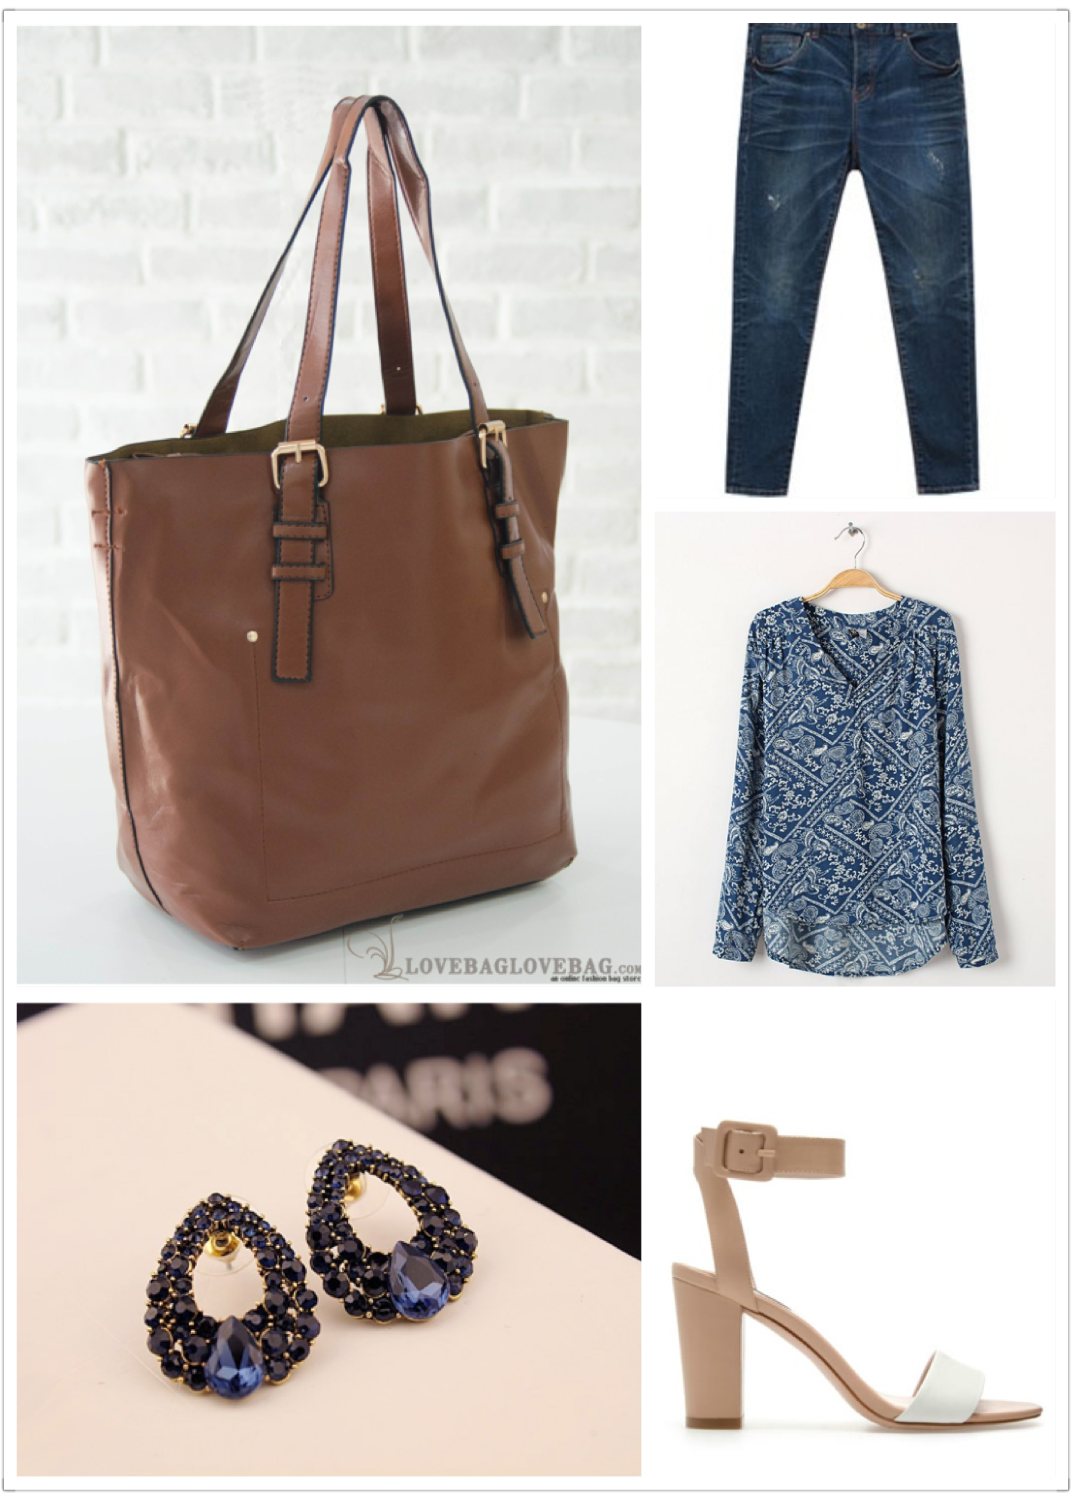 Outfit Inspiration with Bags from LoveBag